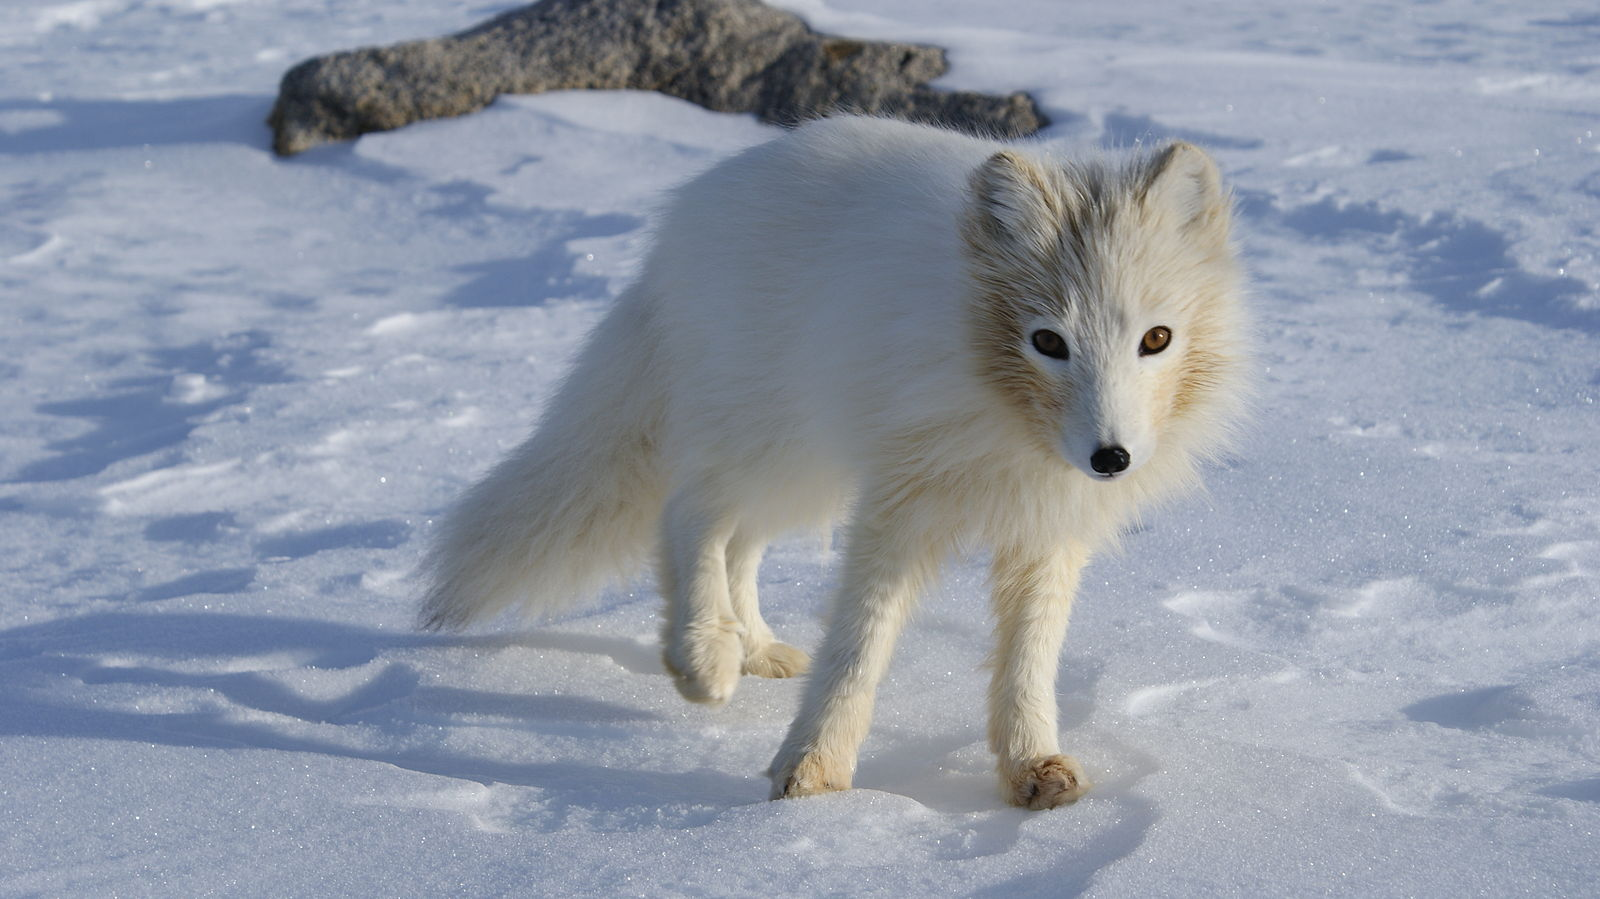 Arctic wolf in white fur standing on top of snow